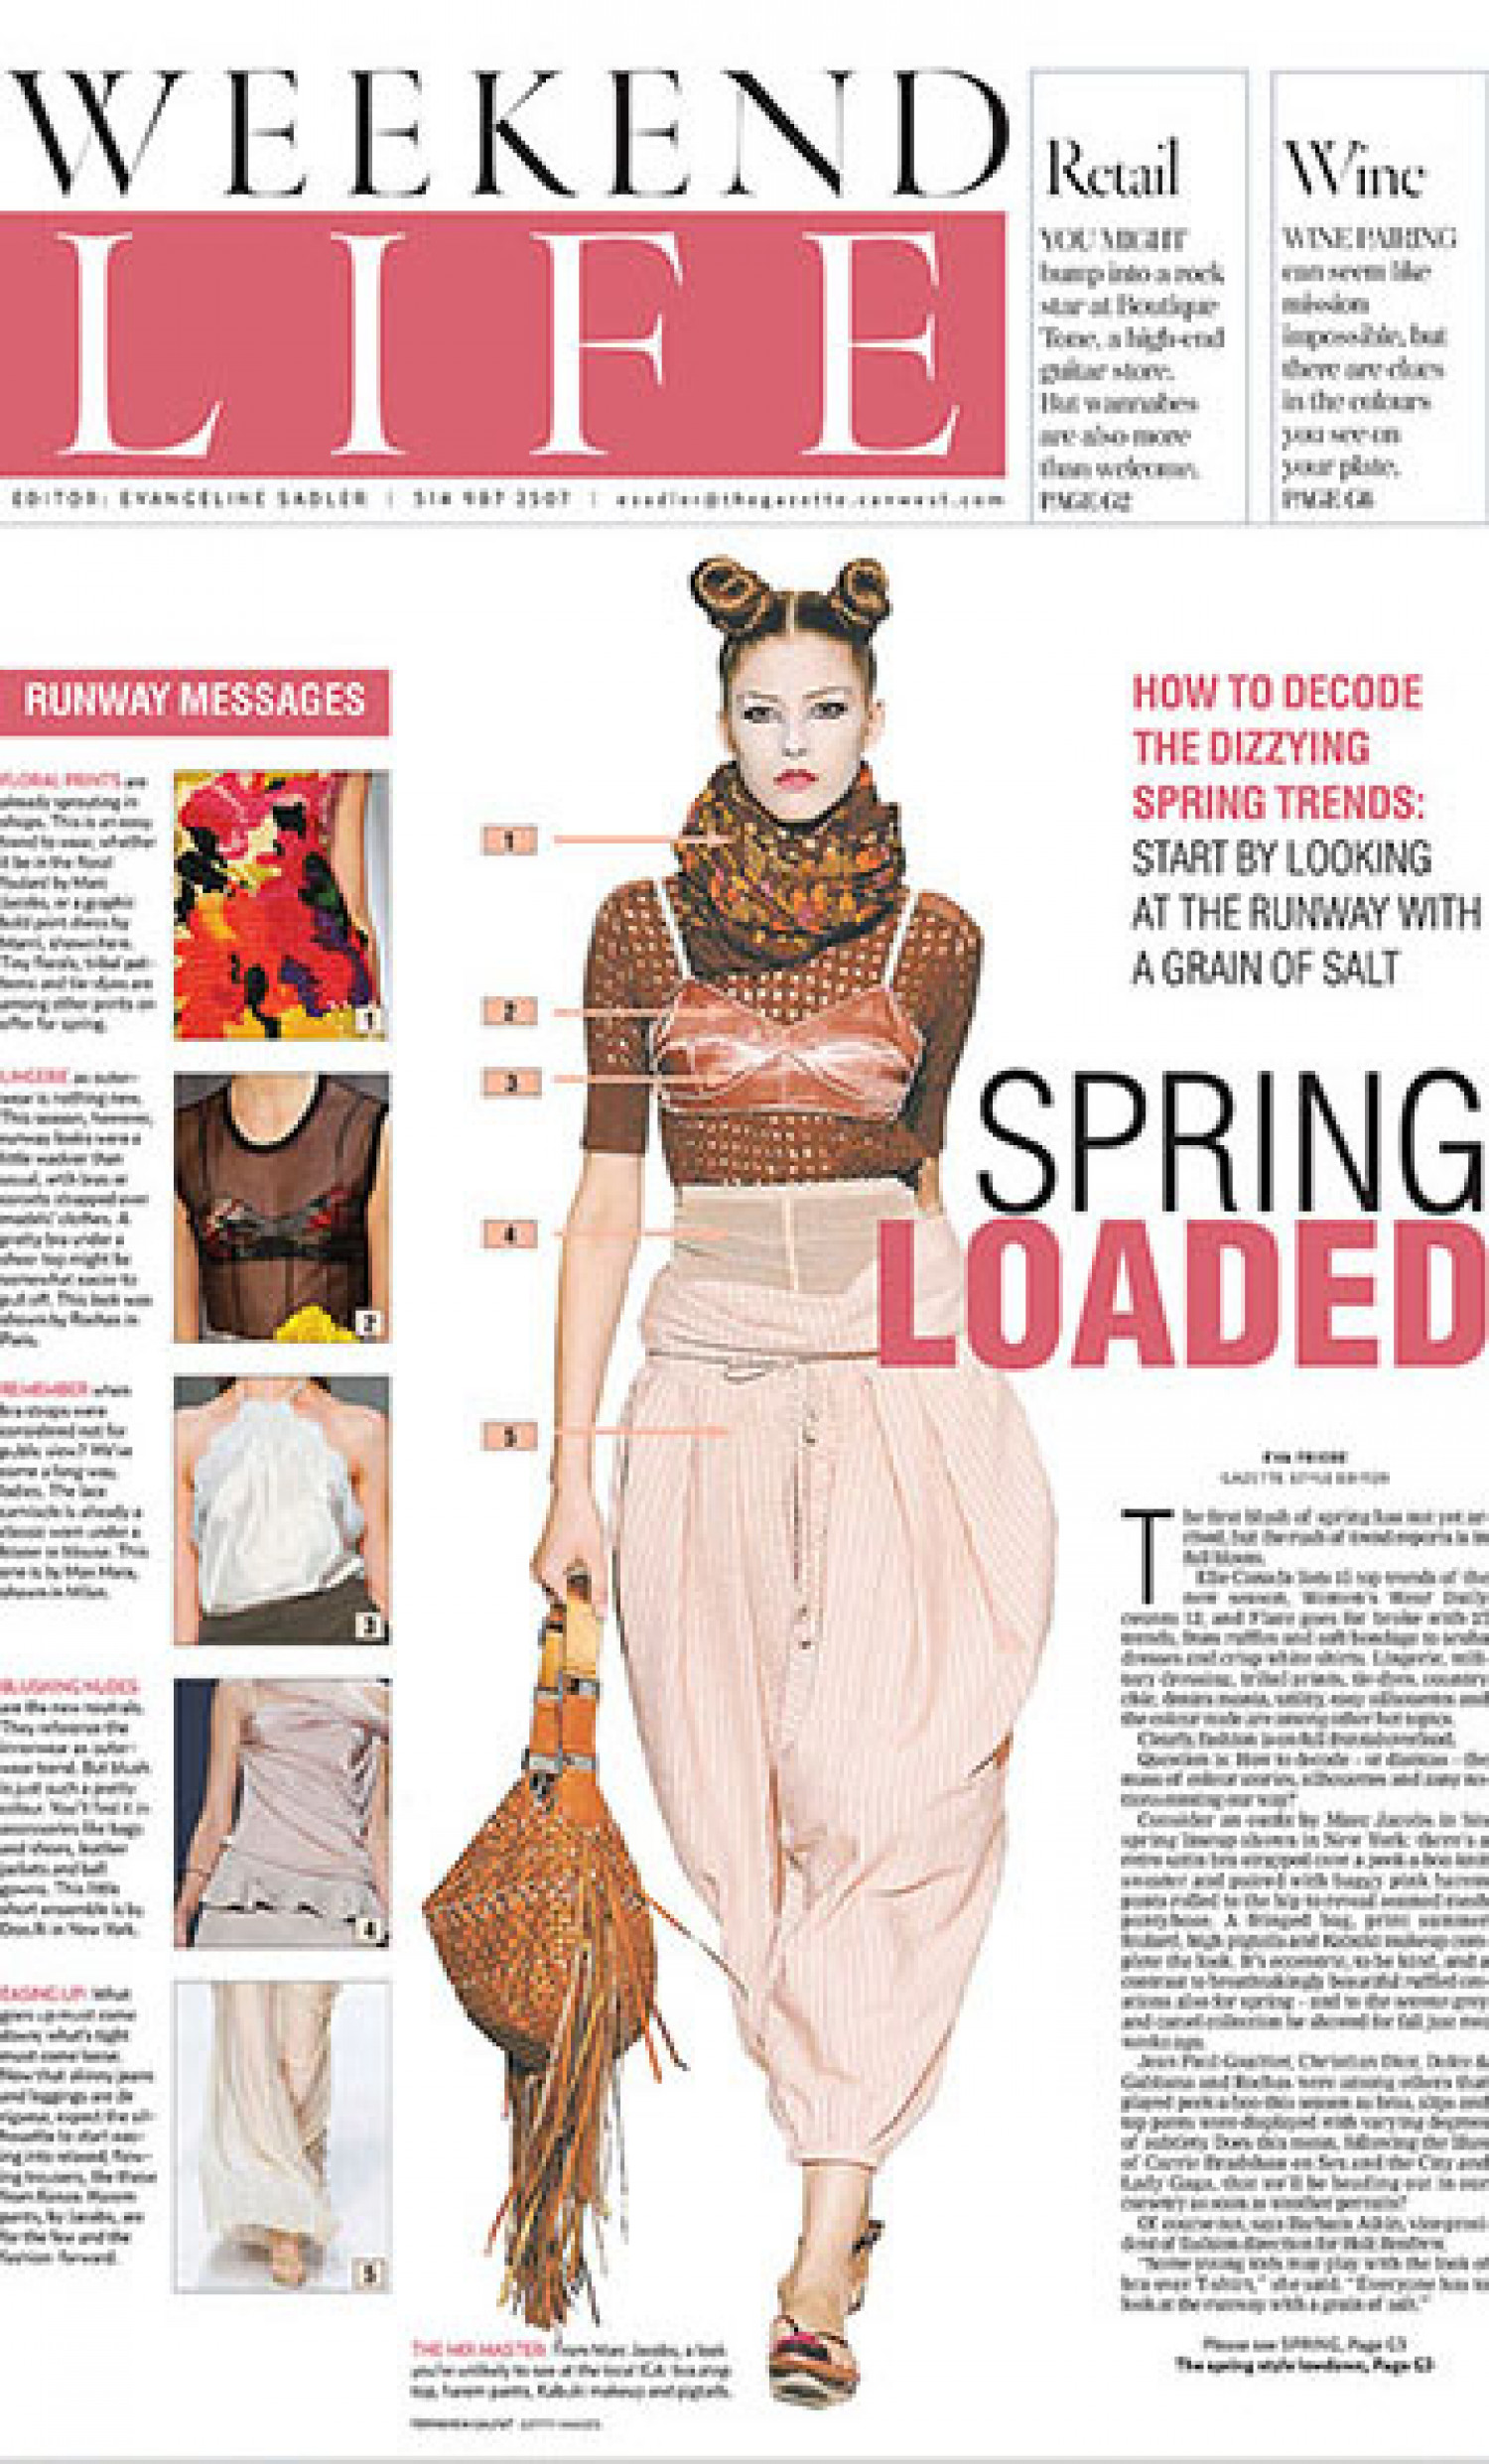 Spring loaded Infographic